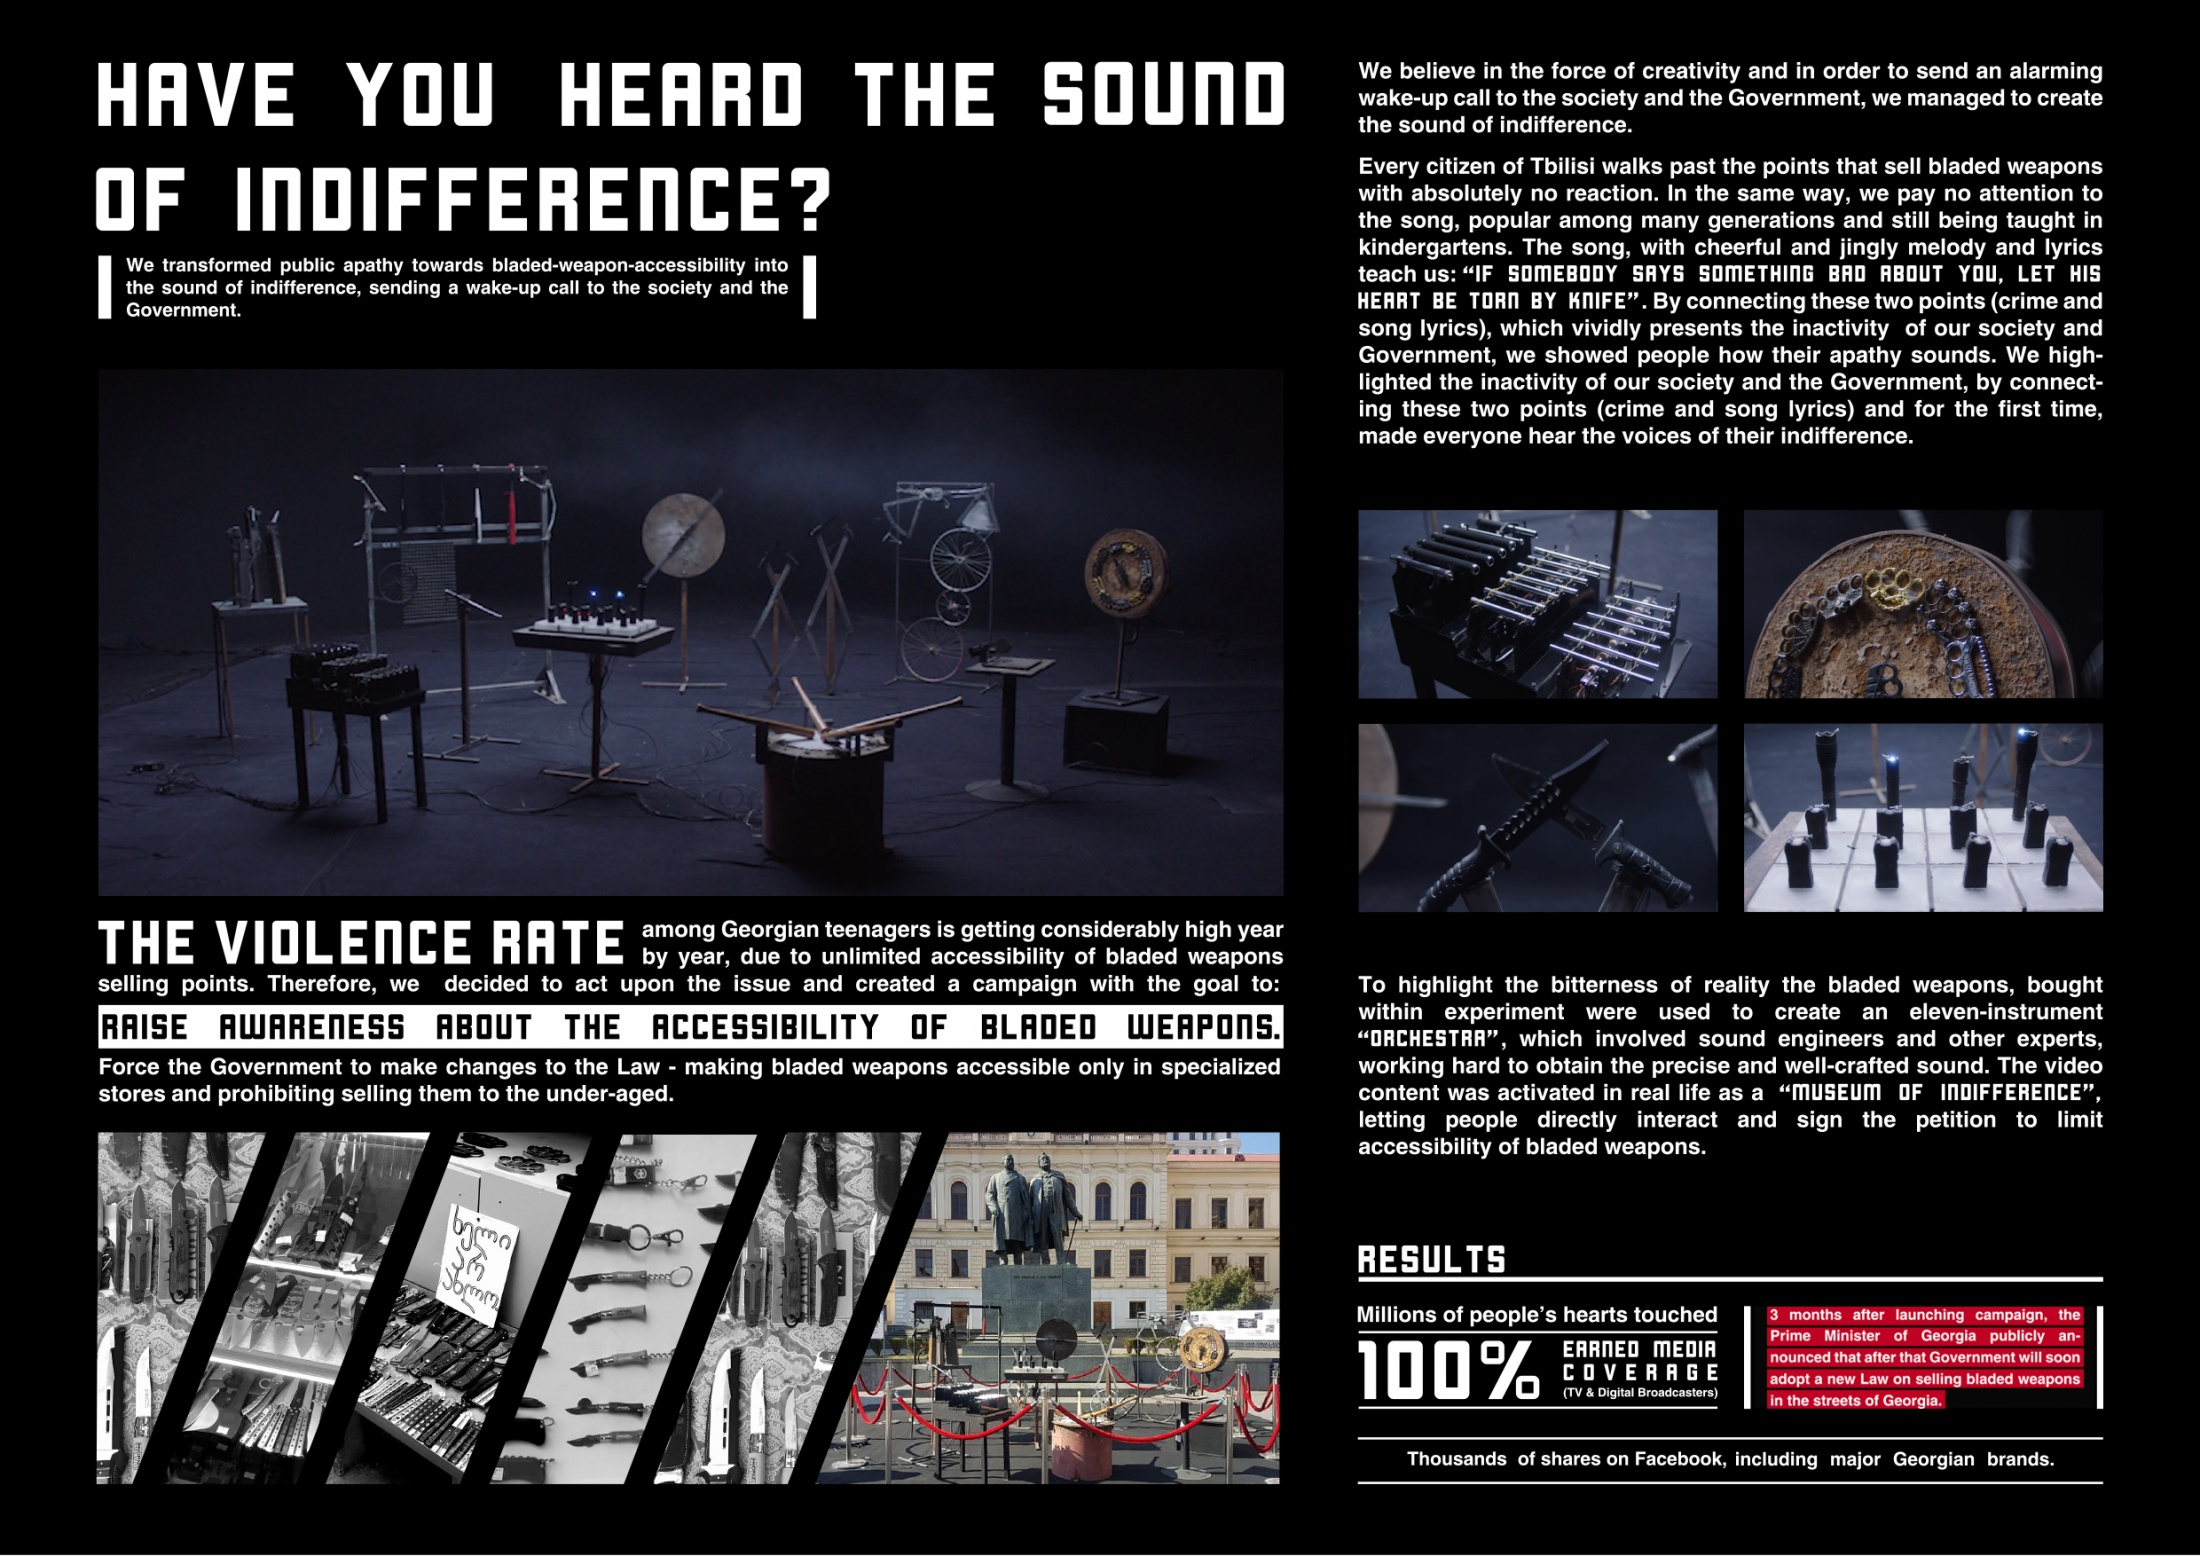 Thumbnail for The Sound of Indifference